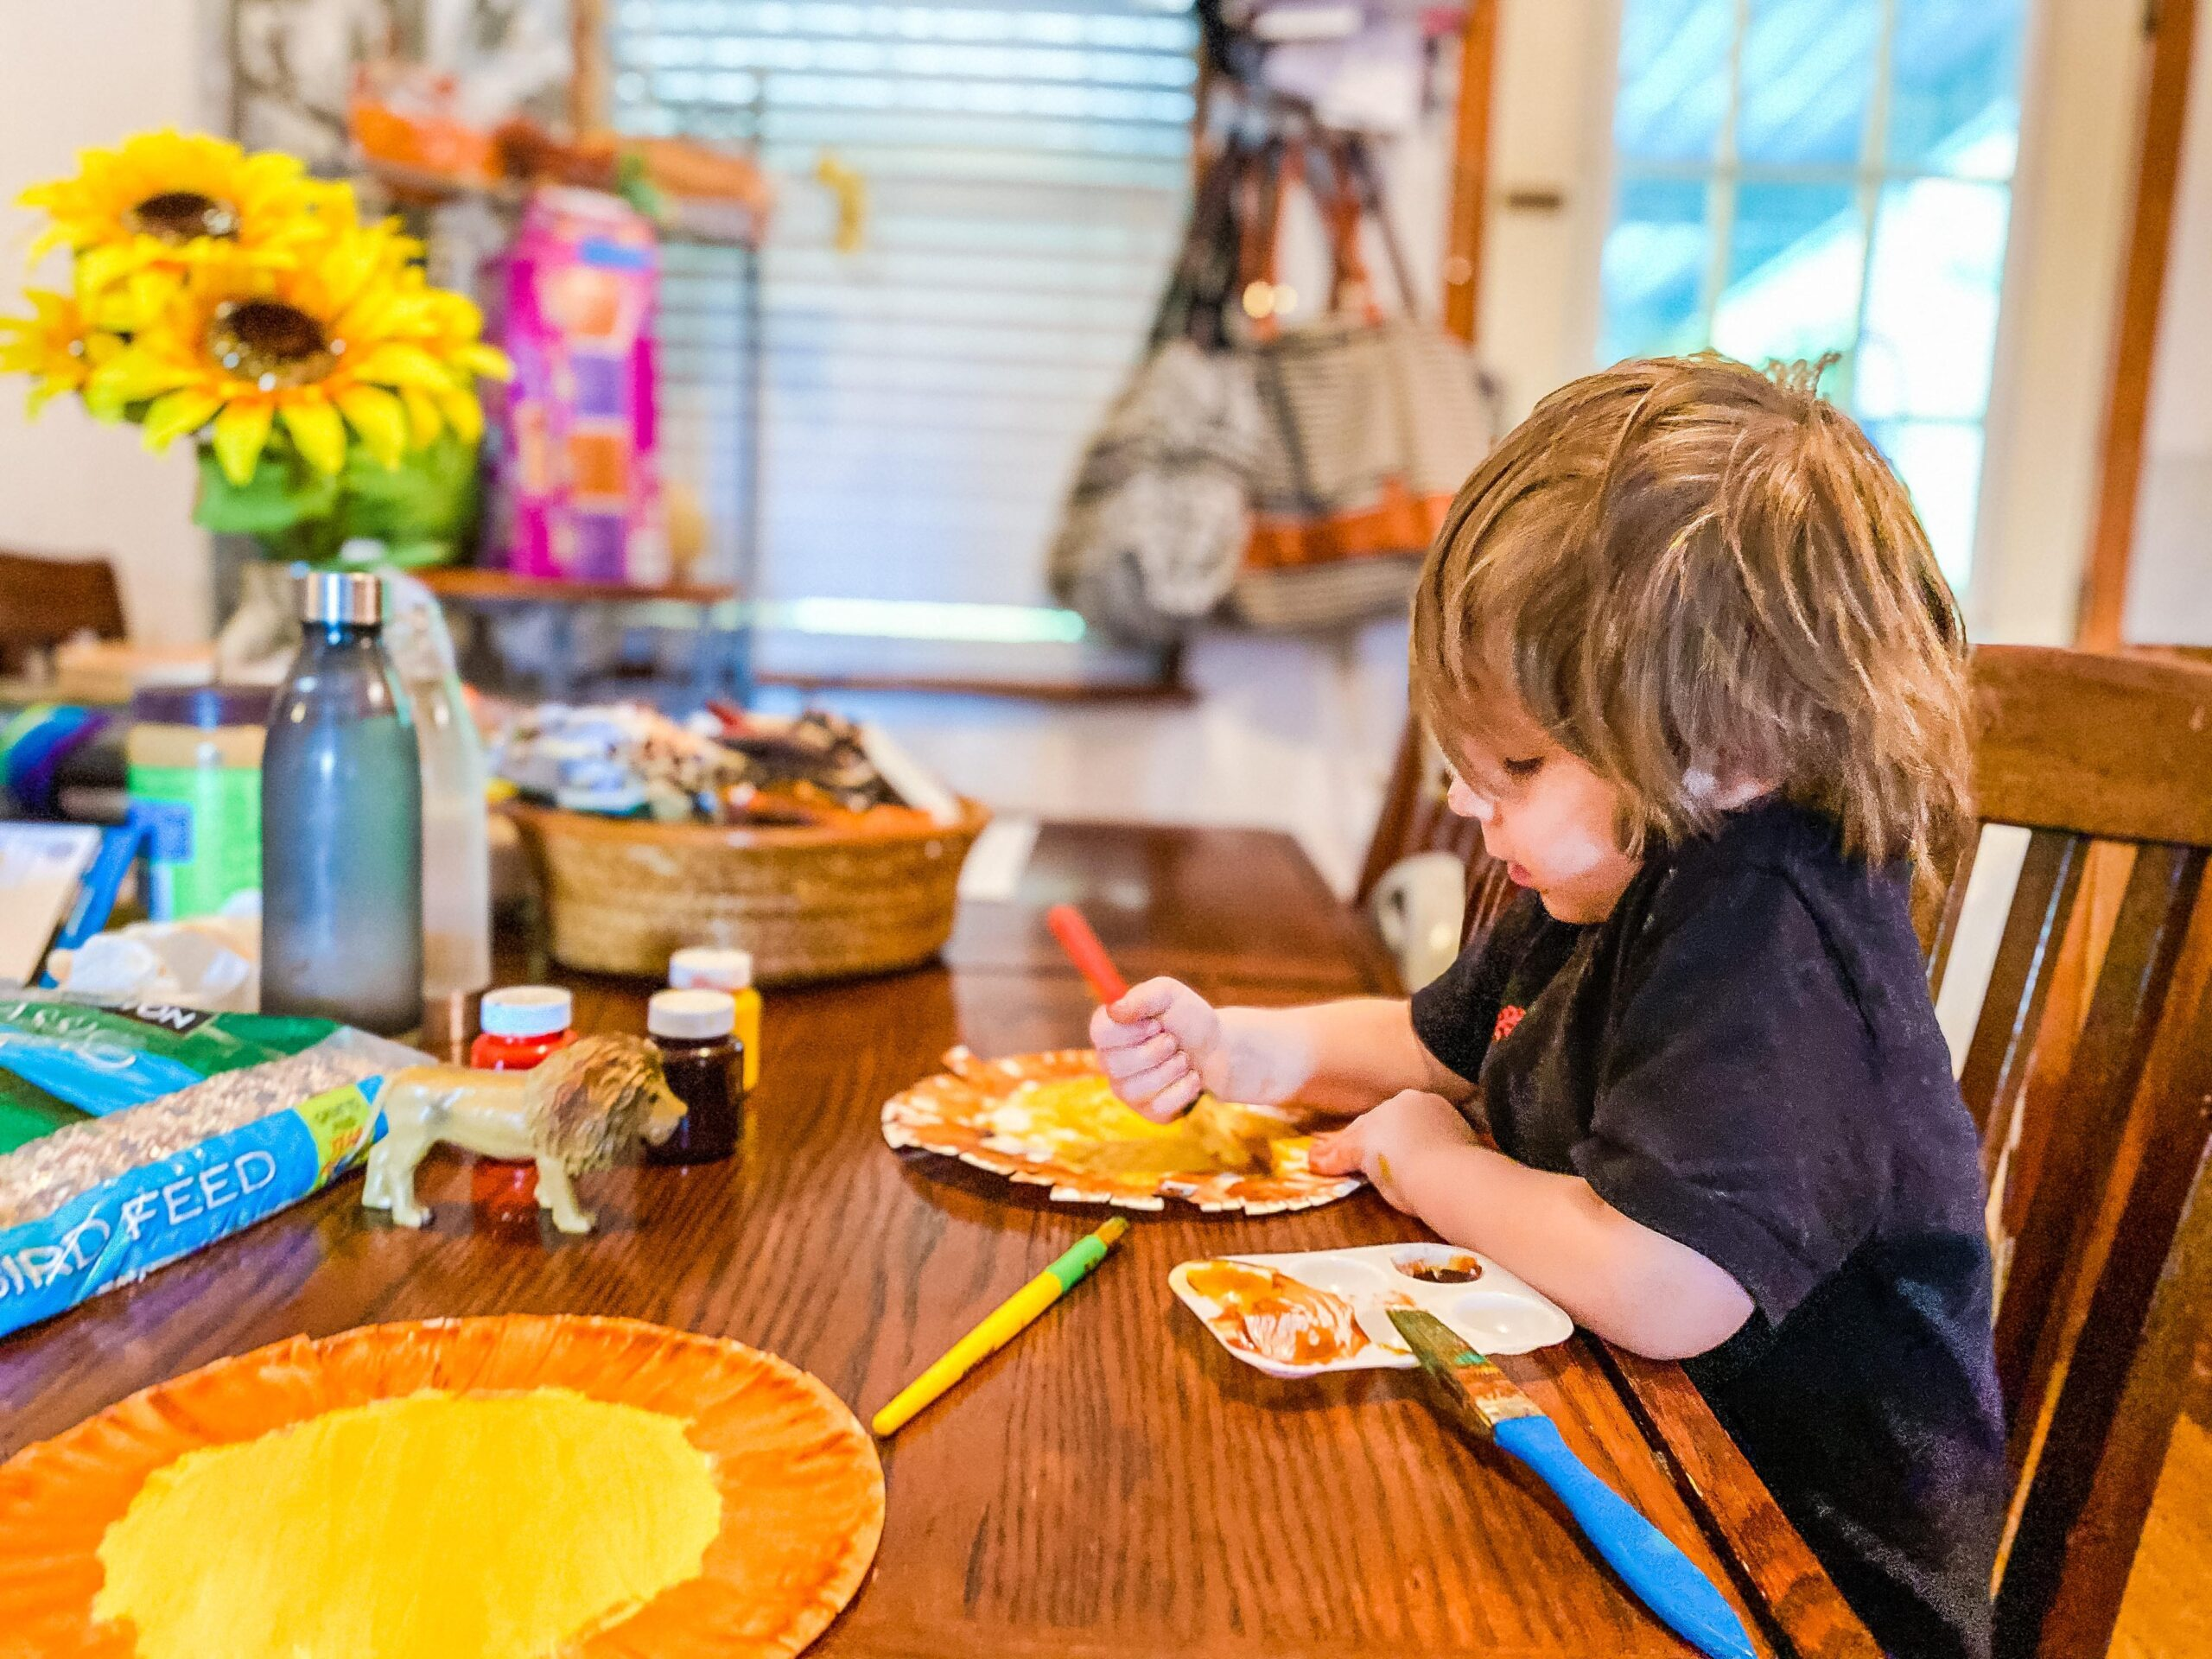 Preschooler painting a paper plate lion at a dining table